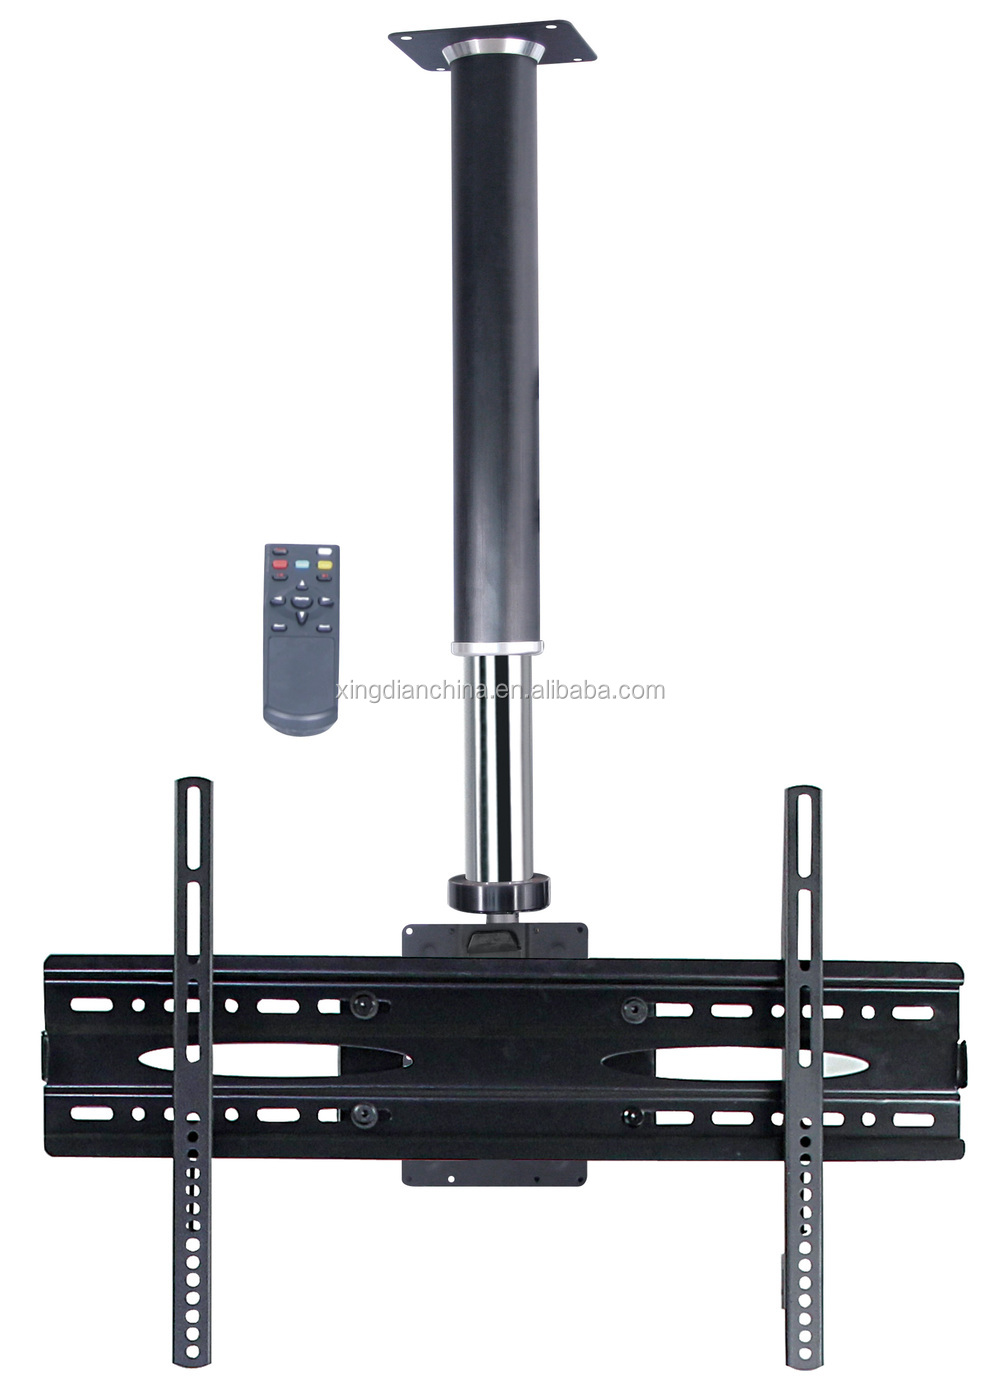 Lcd Tv Ceiling Mount Bracket Webshop Tv Lift With Remote